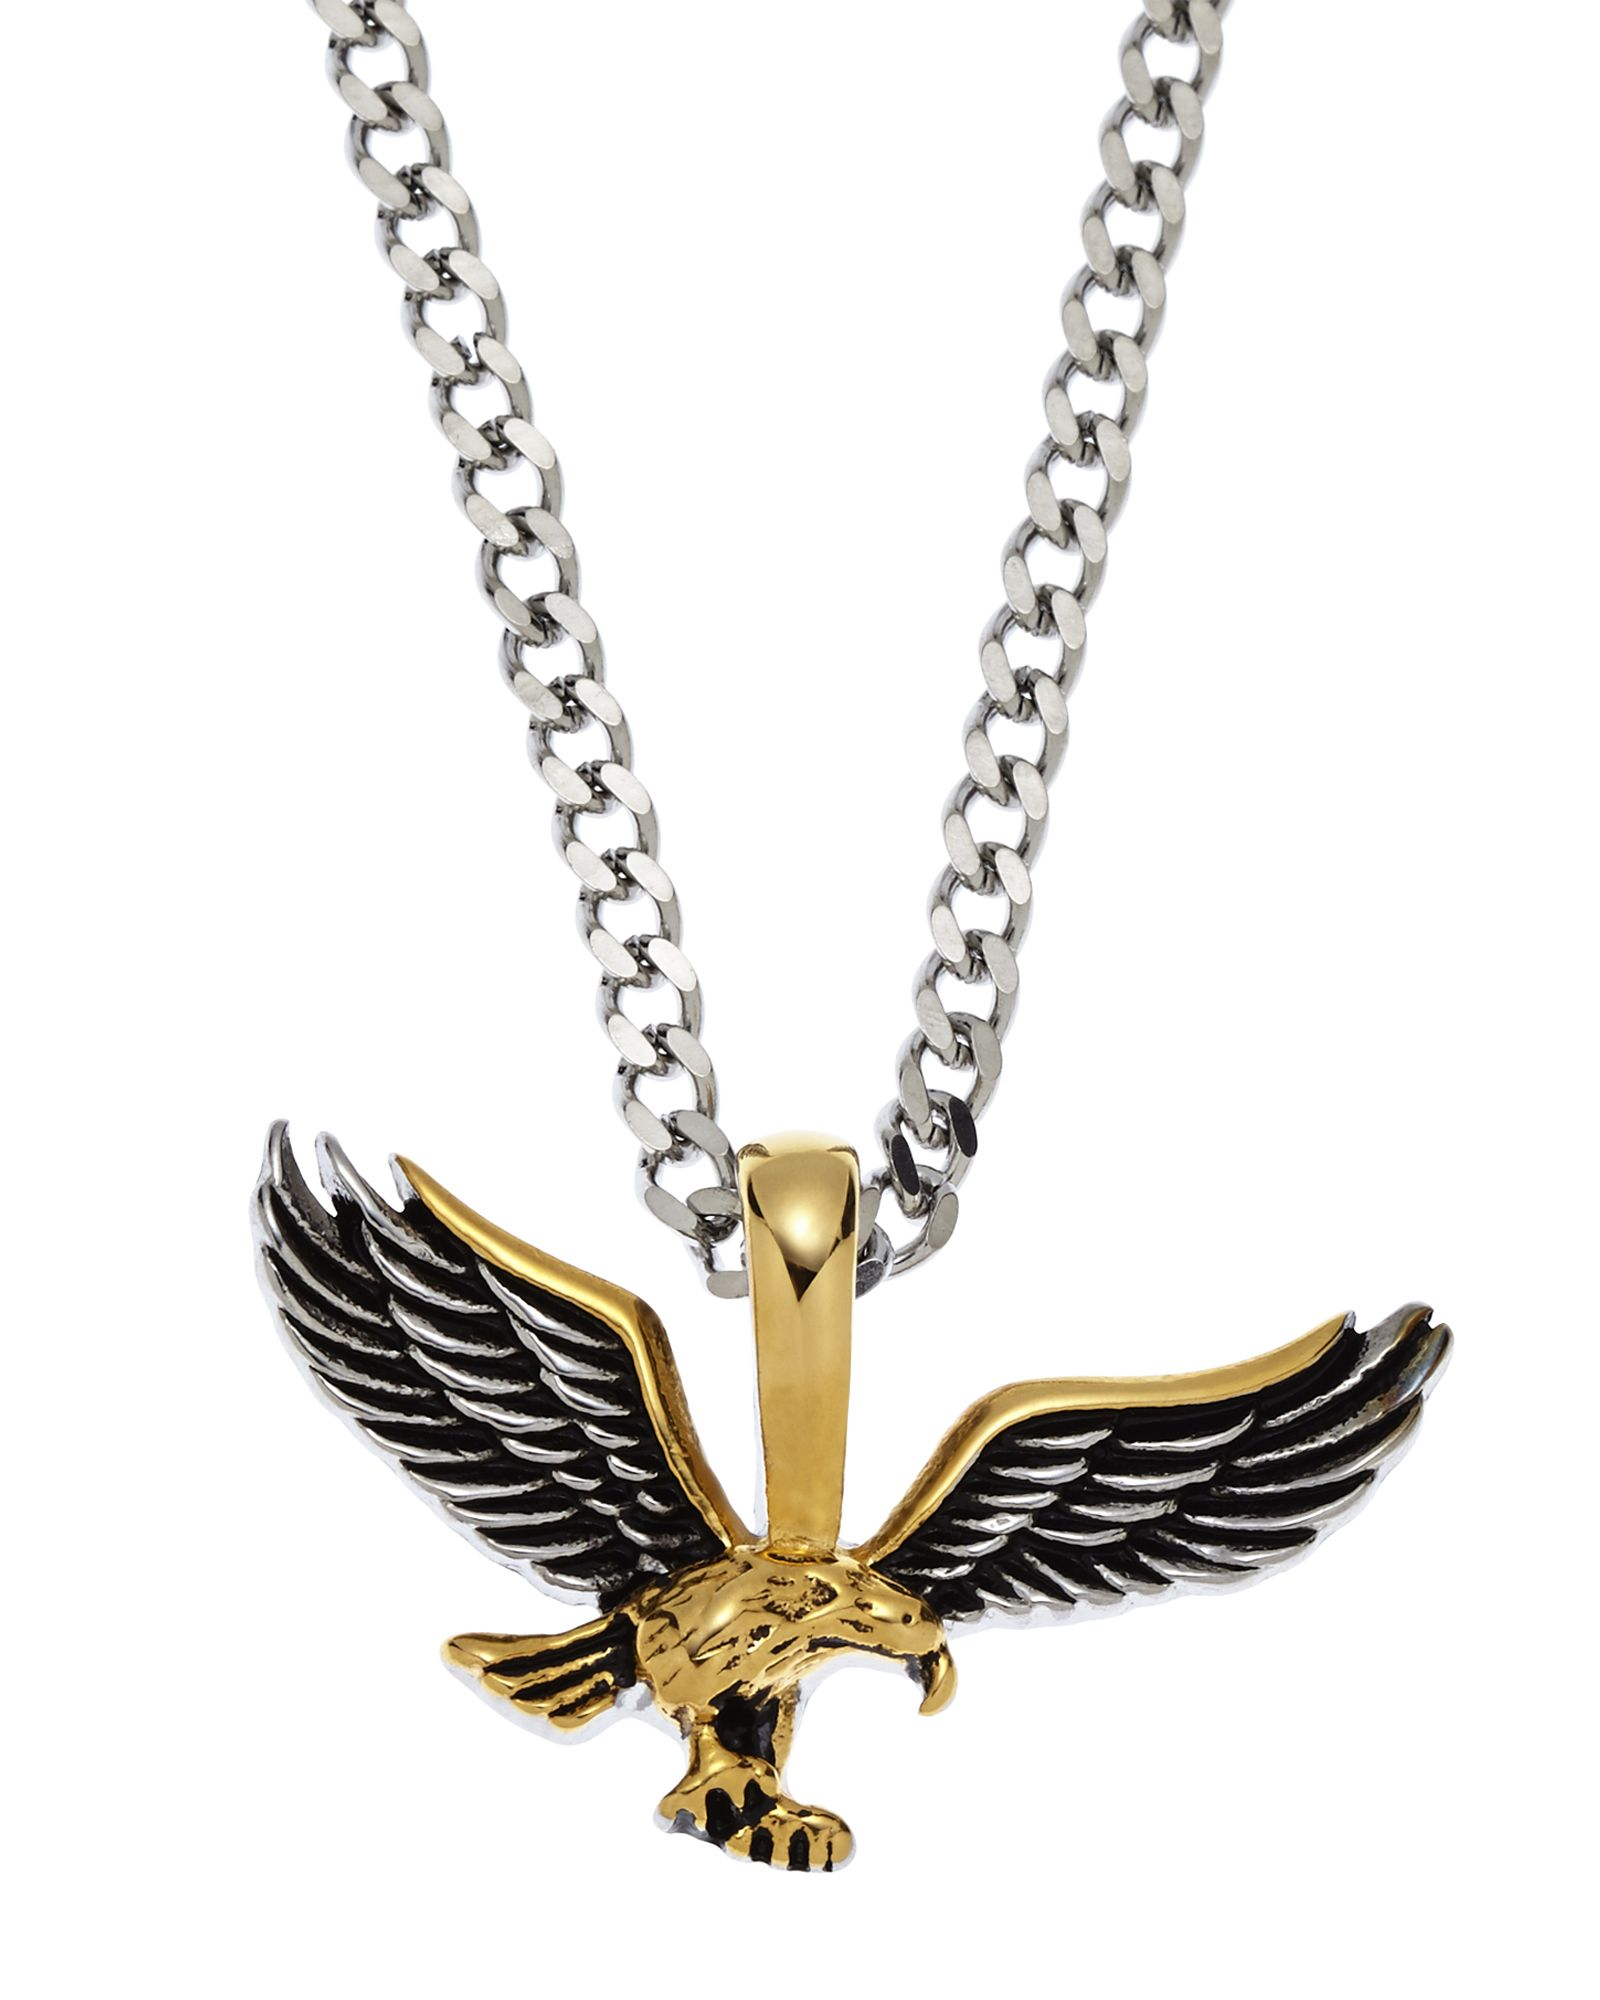 tread necklace fine on jewellery amazon dp jewelry co me eagle pewter don uk pendant t llords